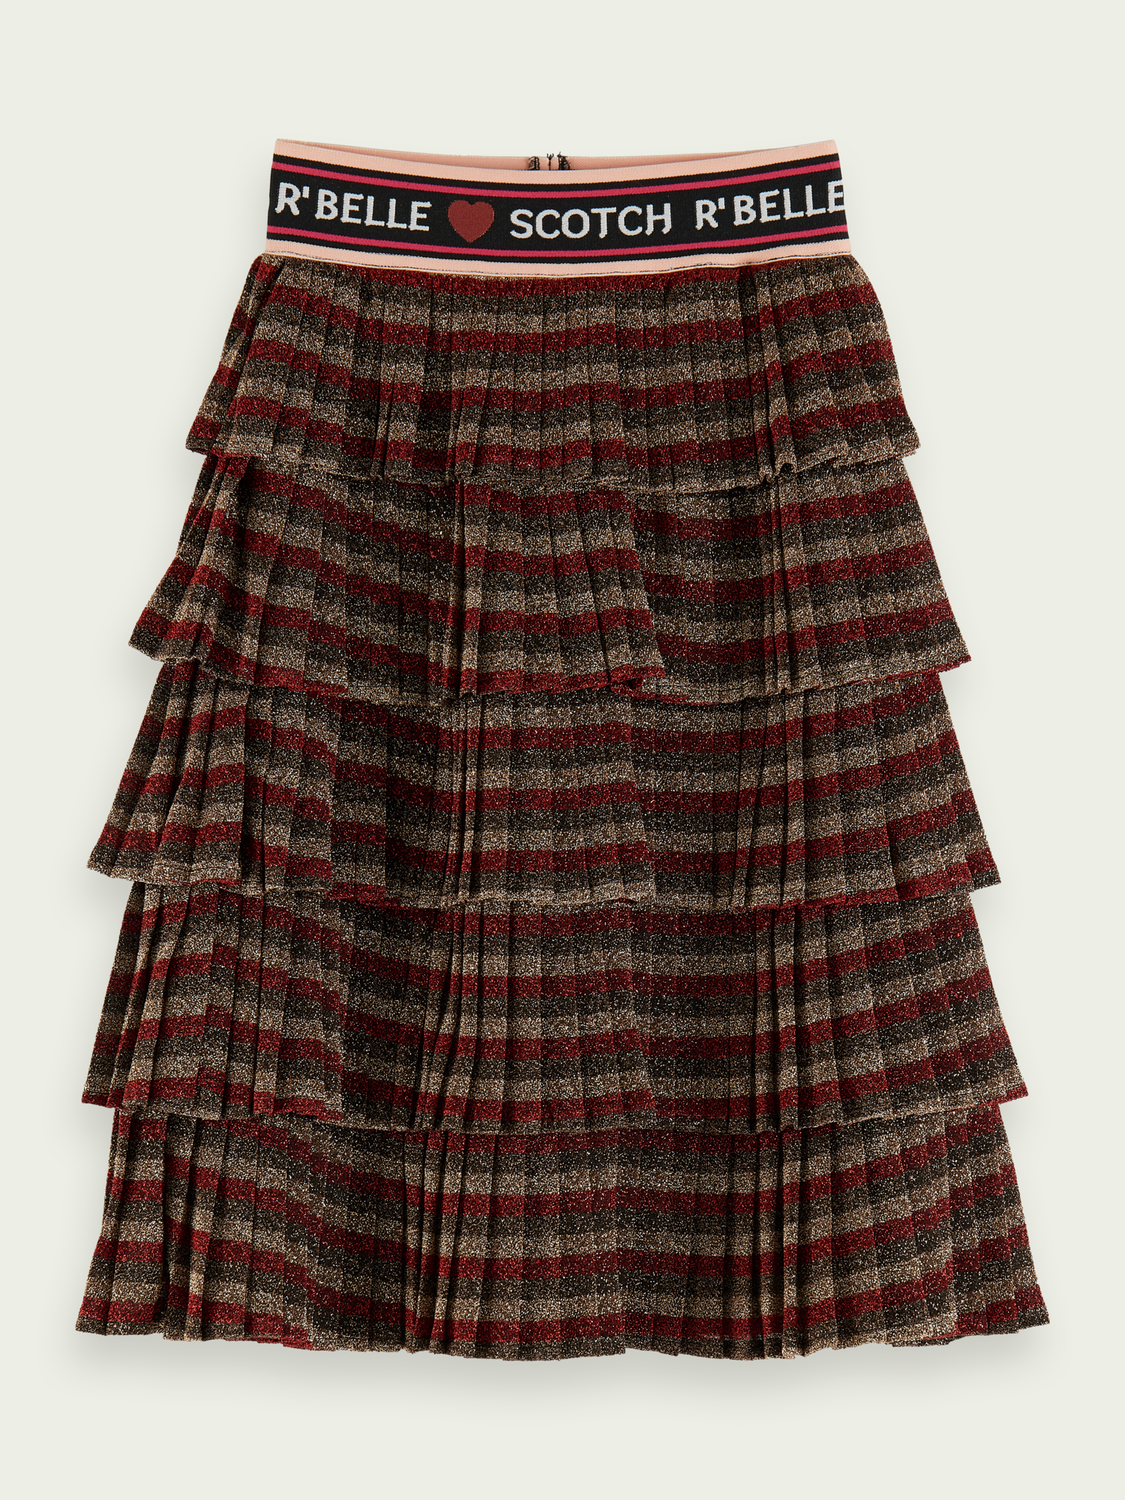 Kids Layered metallic skirt